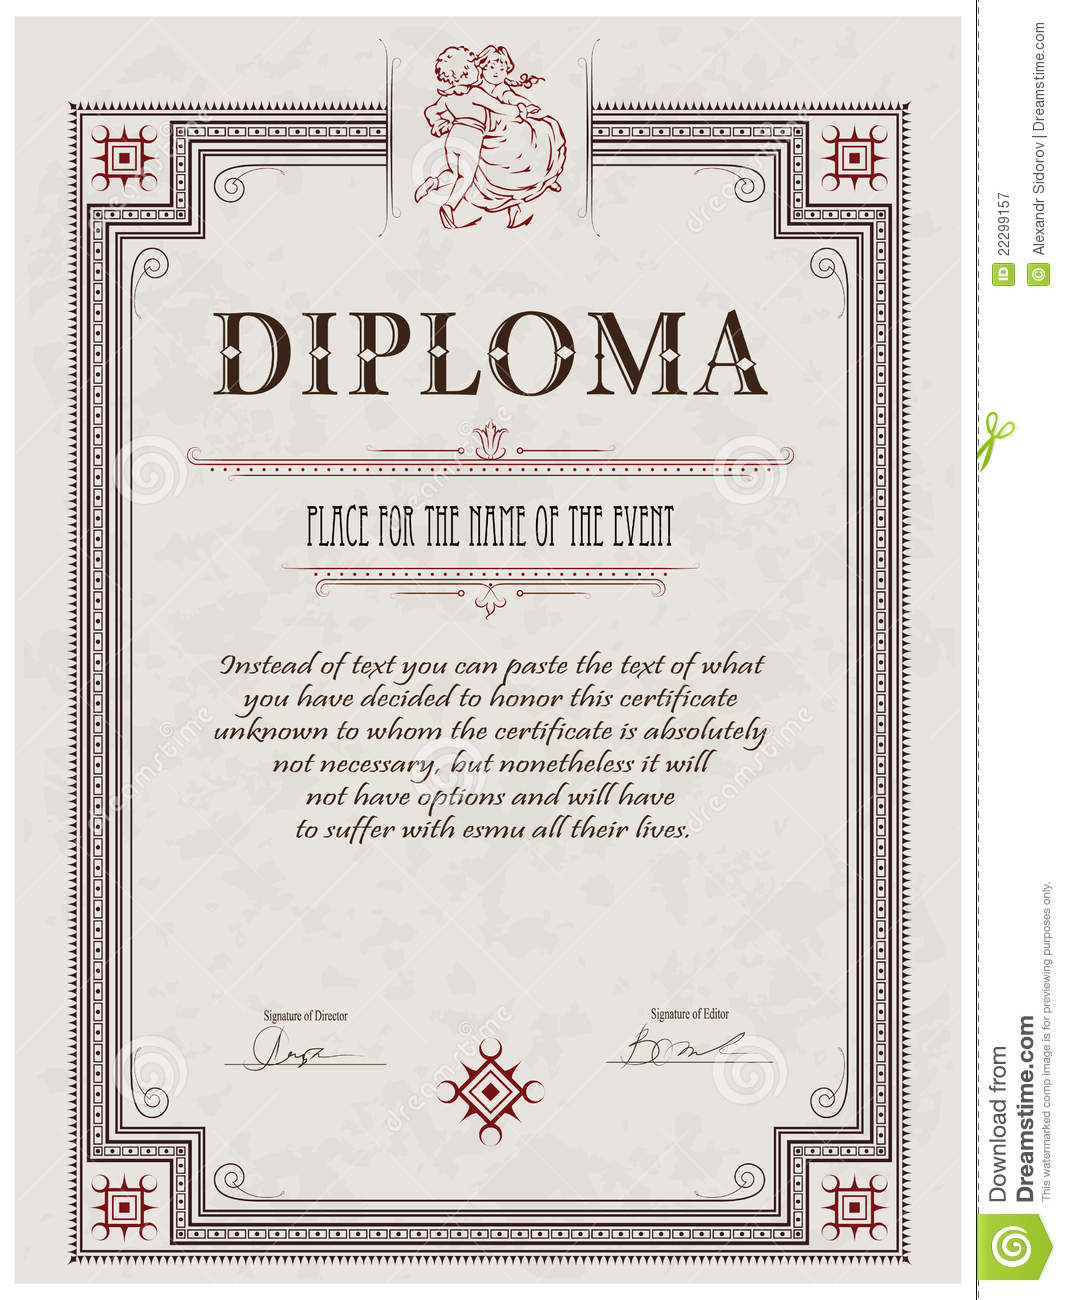 Ged certificate template download the best collection of diploma ged certificate template virtren com alramifo Images